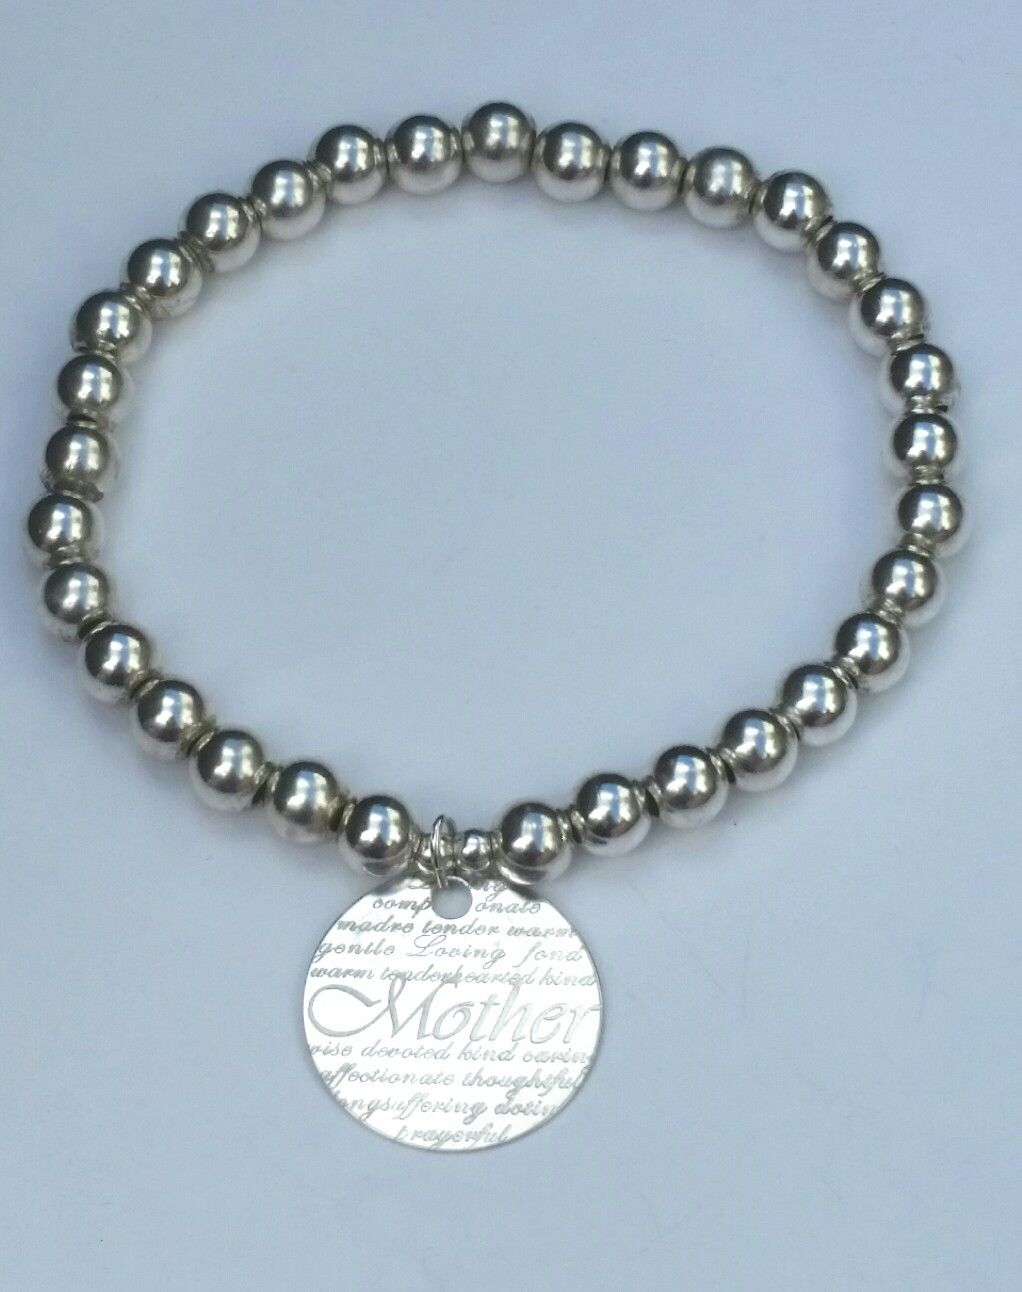 """Chunky Sterling silver Stretch Bracelet with """"Mother"""" Charm.  £30. Www.facebook.com/gardenforgejewellery"""